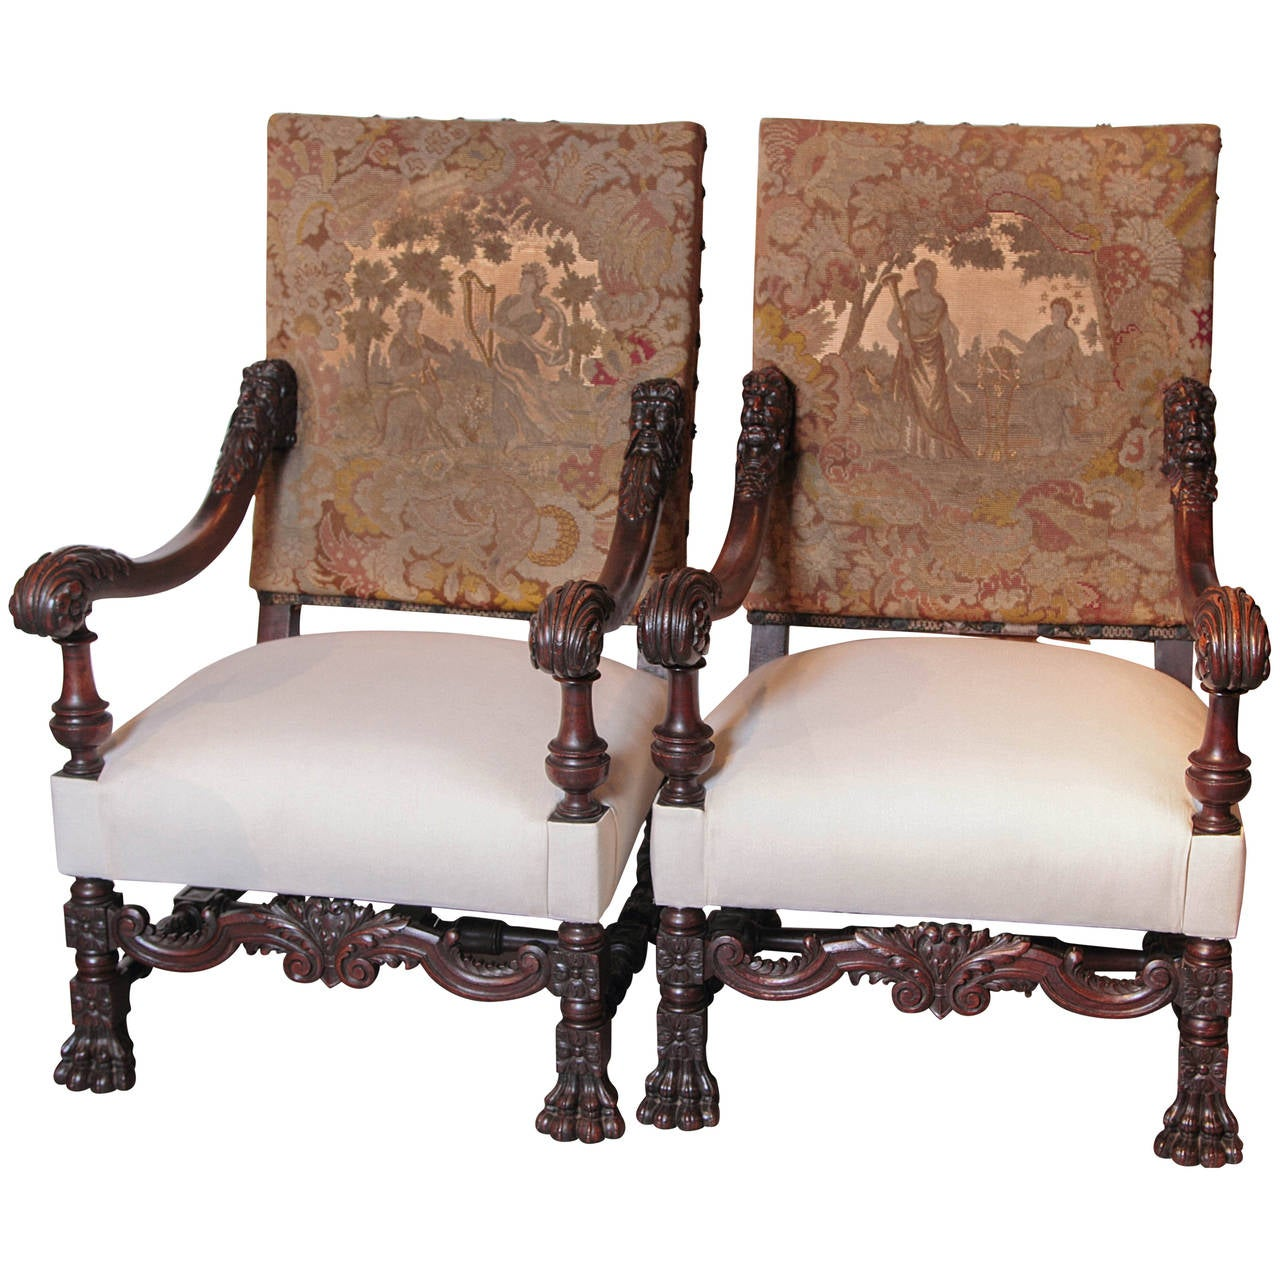 Antique louis xiv chair - Pair Of Antique Louis Xiv Style Walnut Wood Armchairs With Lion S Paw Feet 1